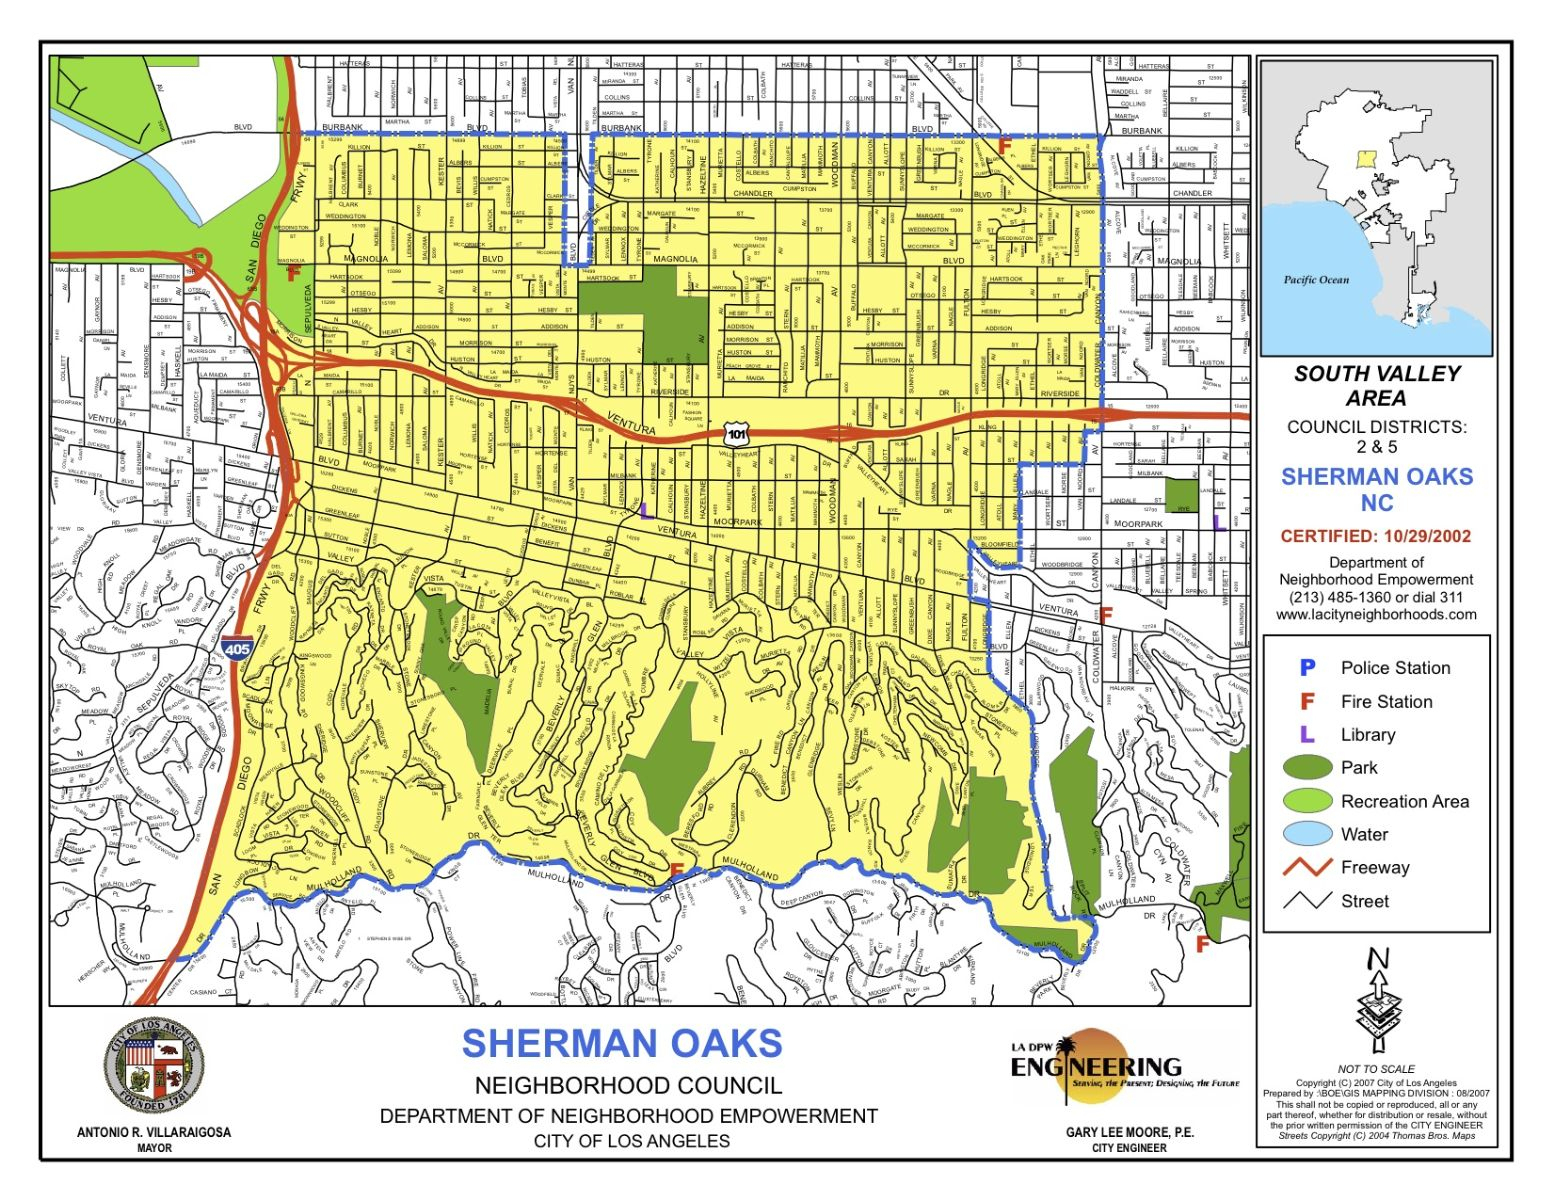 La Council Maps California State Map Where Is Sherman Oaks - Sherman Oaks California Map